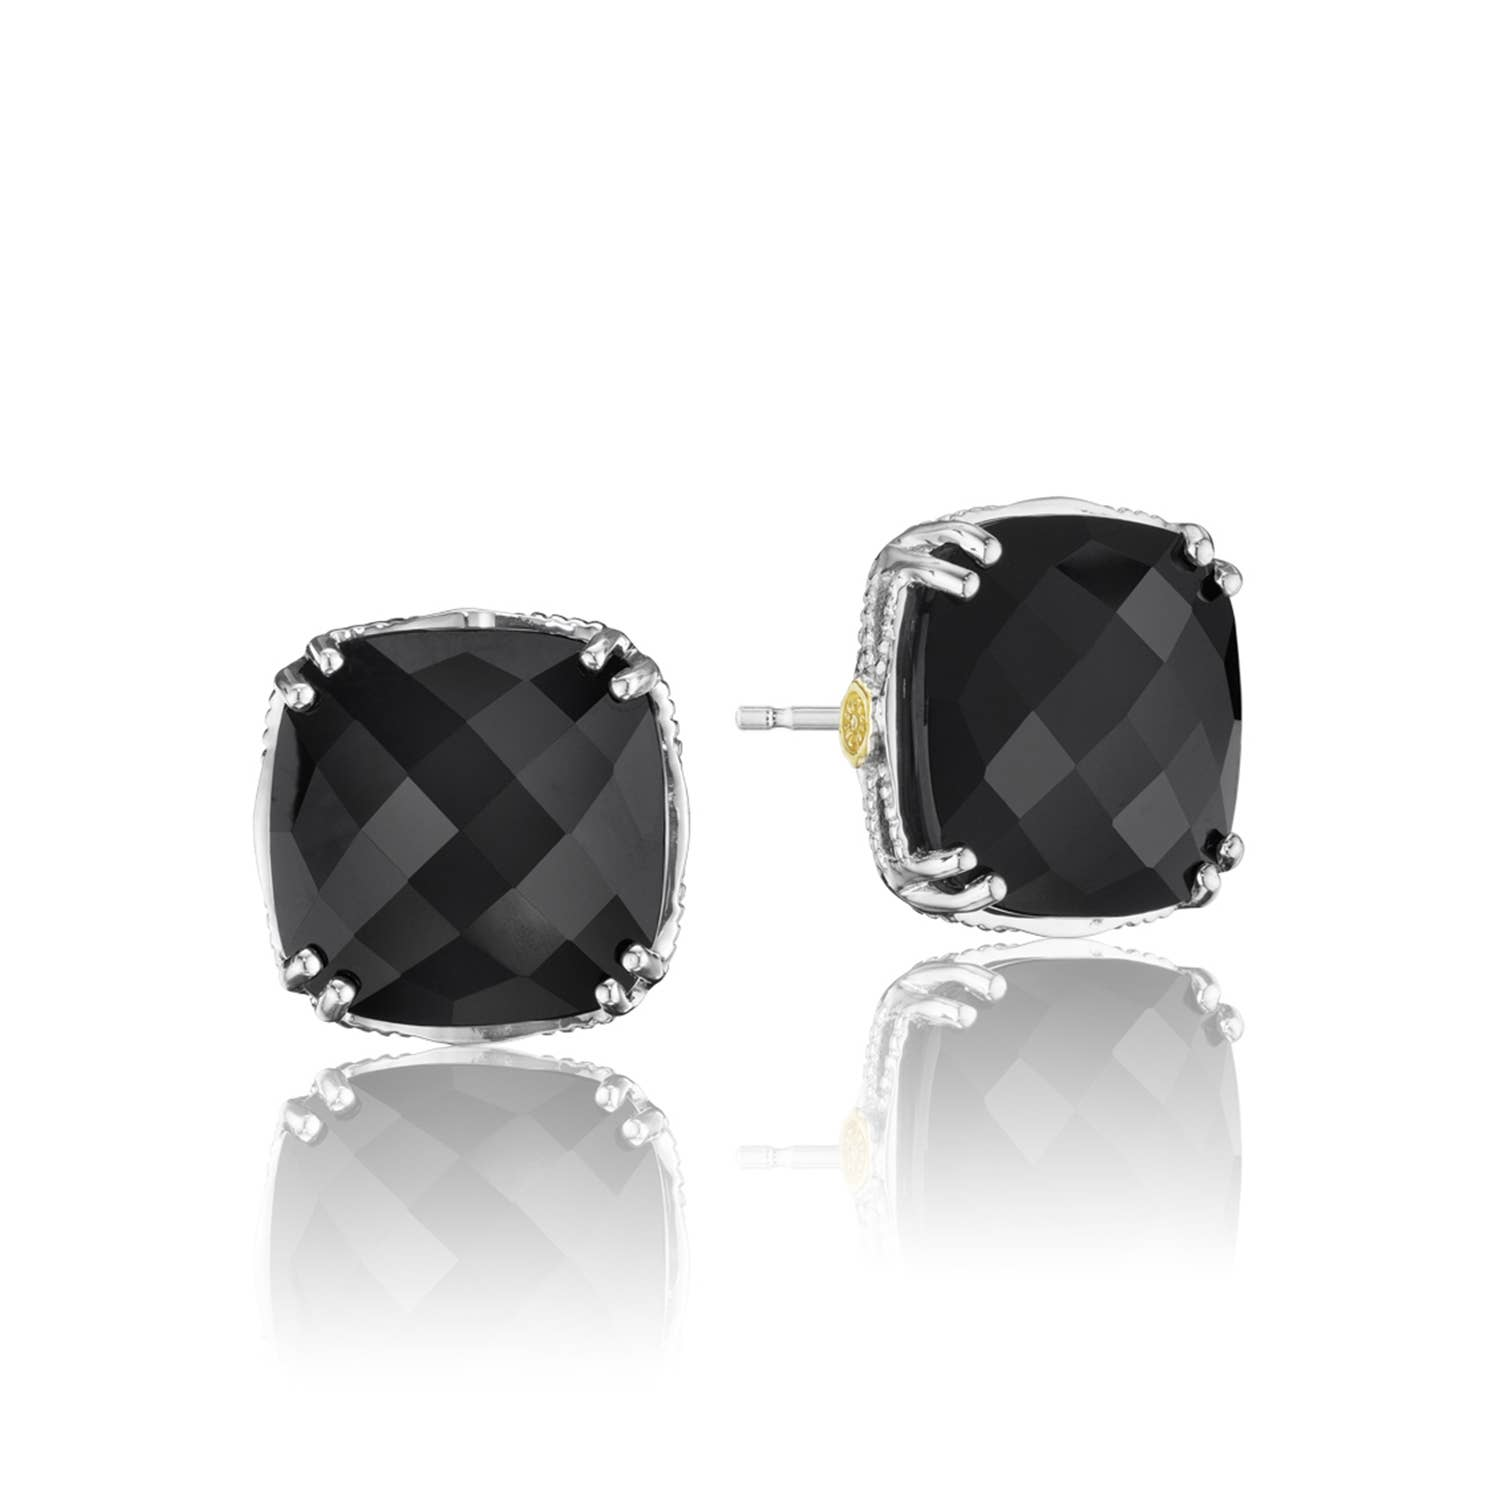 a6321f744692f Black Onyx Gemstone Jewelry by Tacori®